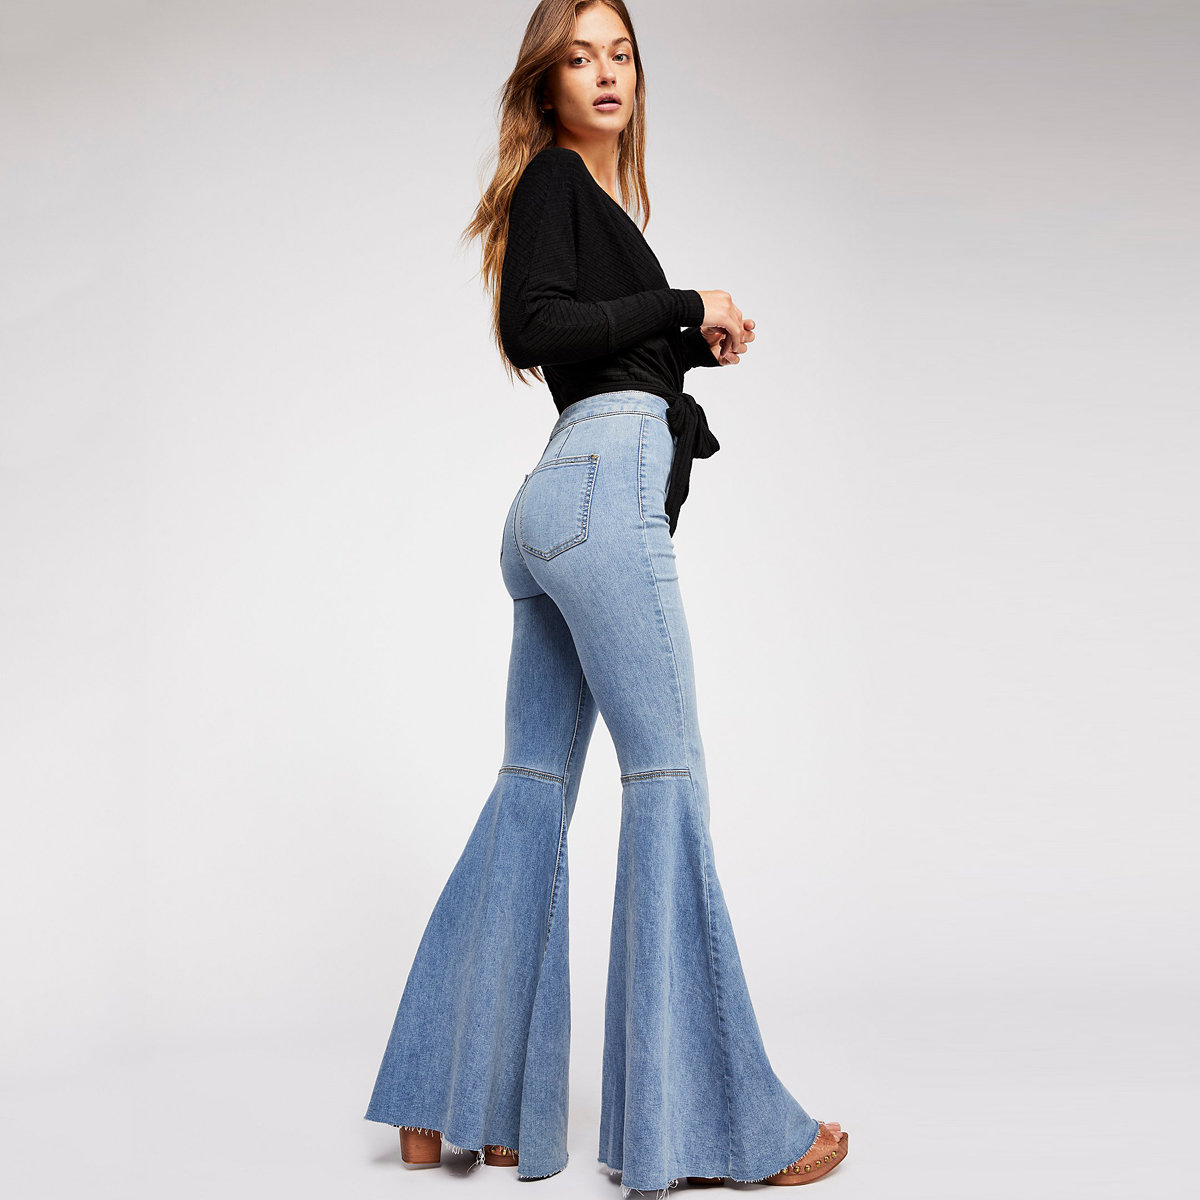 Flare High Rise   Jeans   Hippie Chic Raw Hem Denim Trousers Vintage 2018 Fall High Waist Long Women Pants Slim Stretchy   Jeans